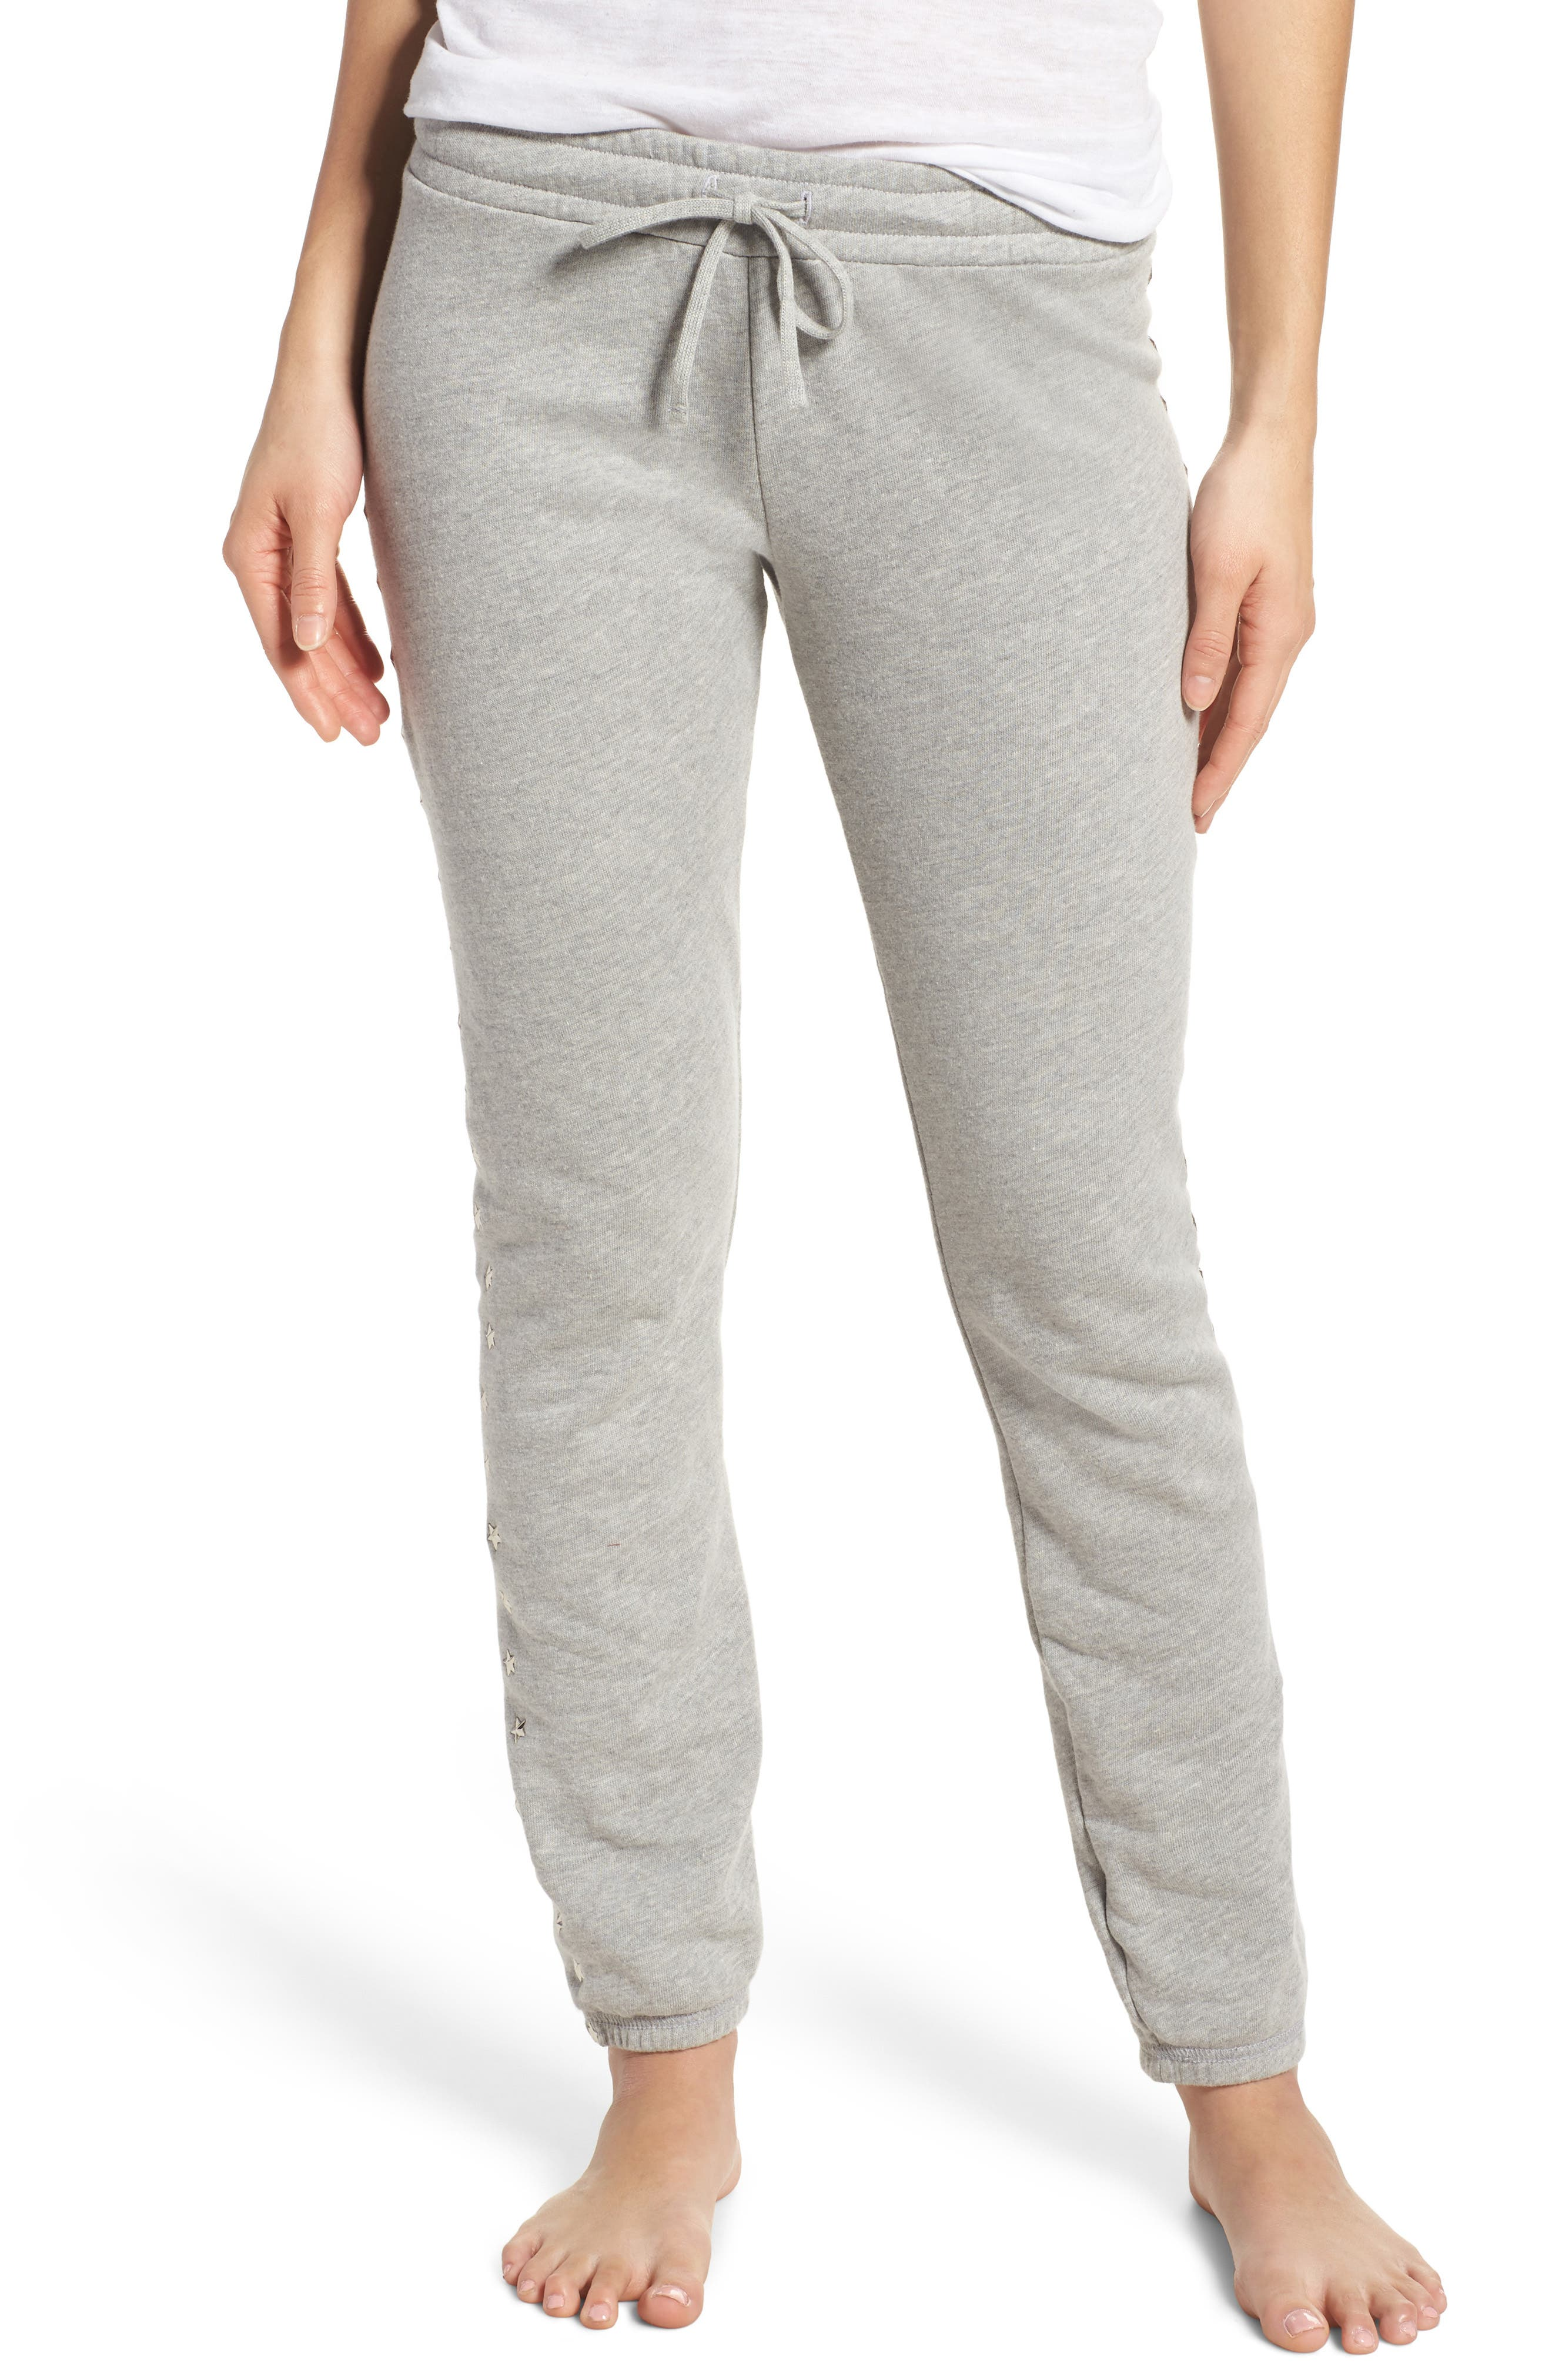 Campbell Vintage Lounge Pants,                         Main,                         color, Heather Grey